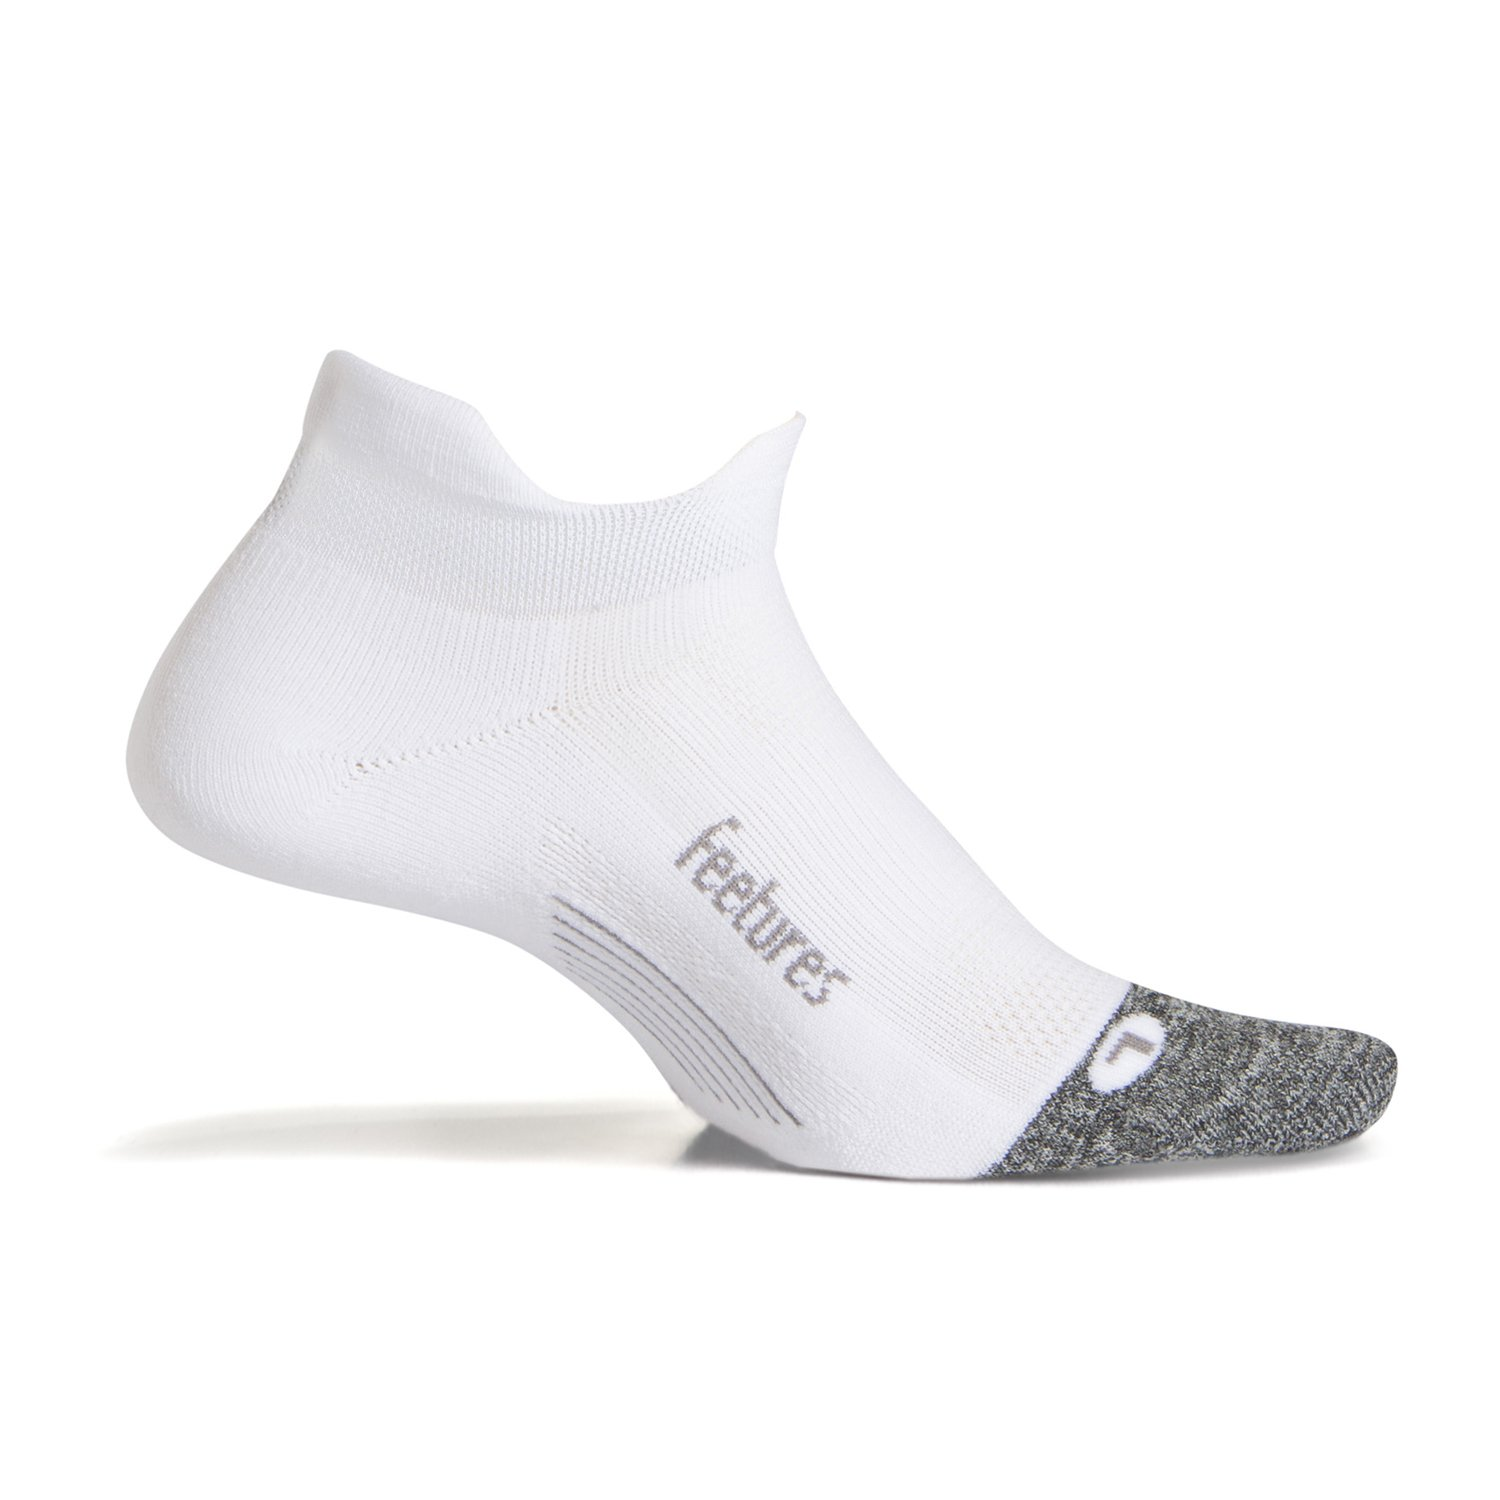 Feetures - Elite Light Cushion - No Show Tab - Athletic Running Socks for Men and Women